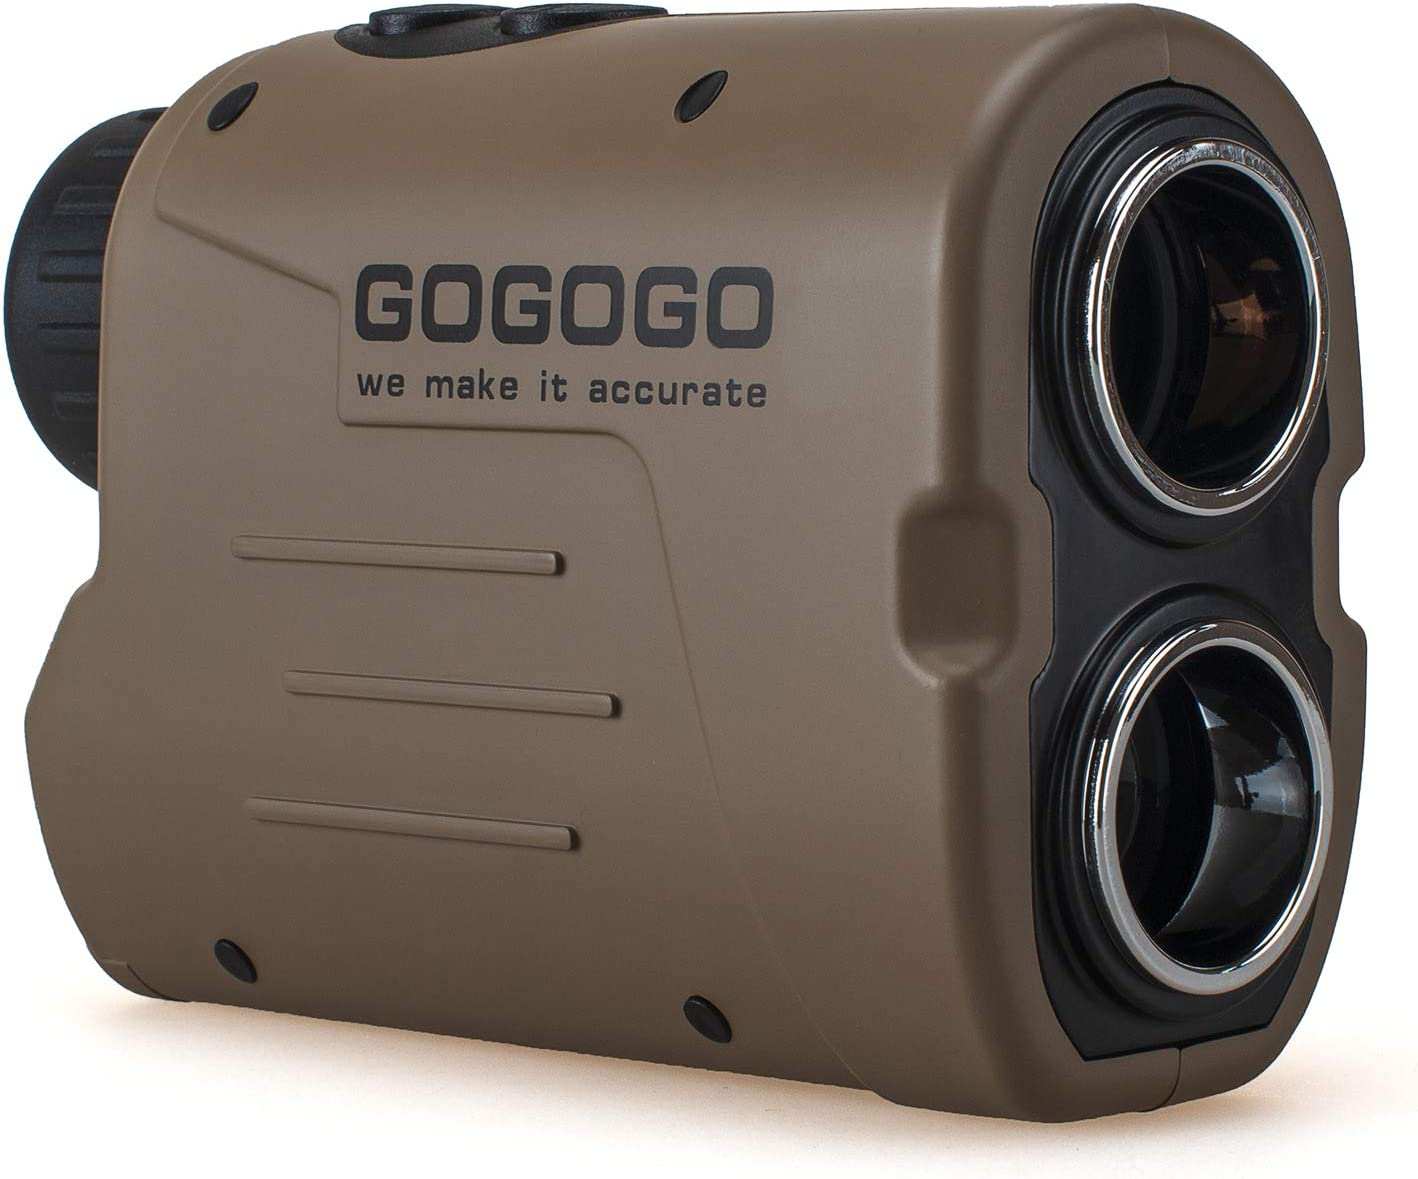 Gogogo Sport Laser Golf & Hunting Rangefinder 1200 Yards 6X Magnification Laser Range Finder with Pin-Seeker & Flag-Lock